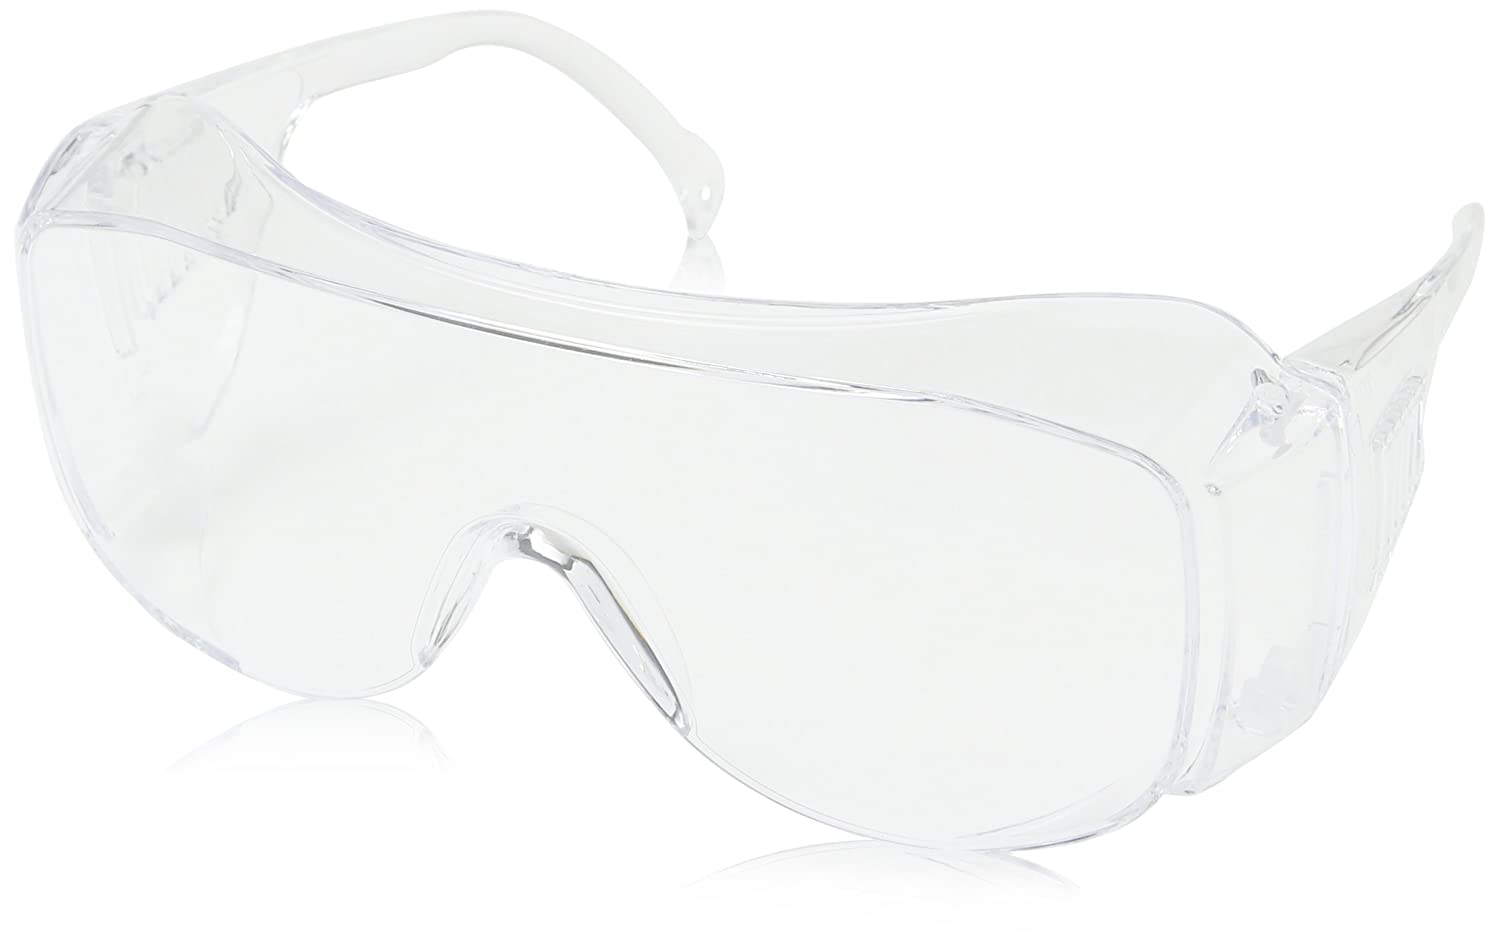 Himalayan FP03 PROFORCE Safety Over-Spectacle, Clear BRG10035